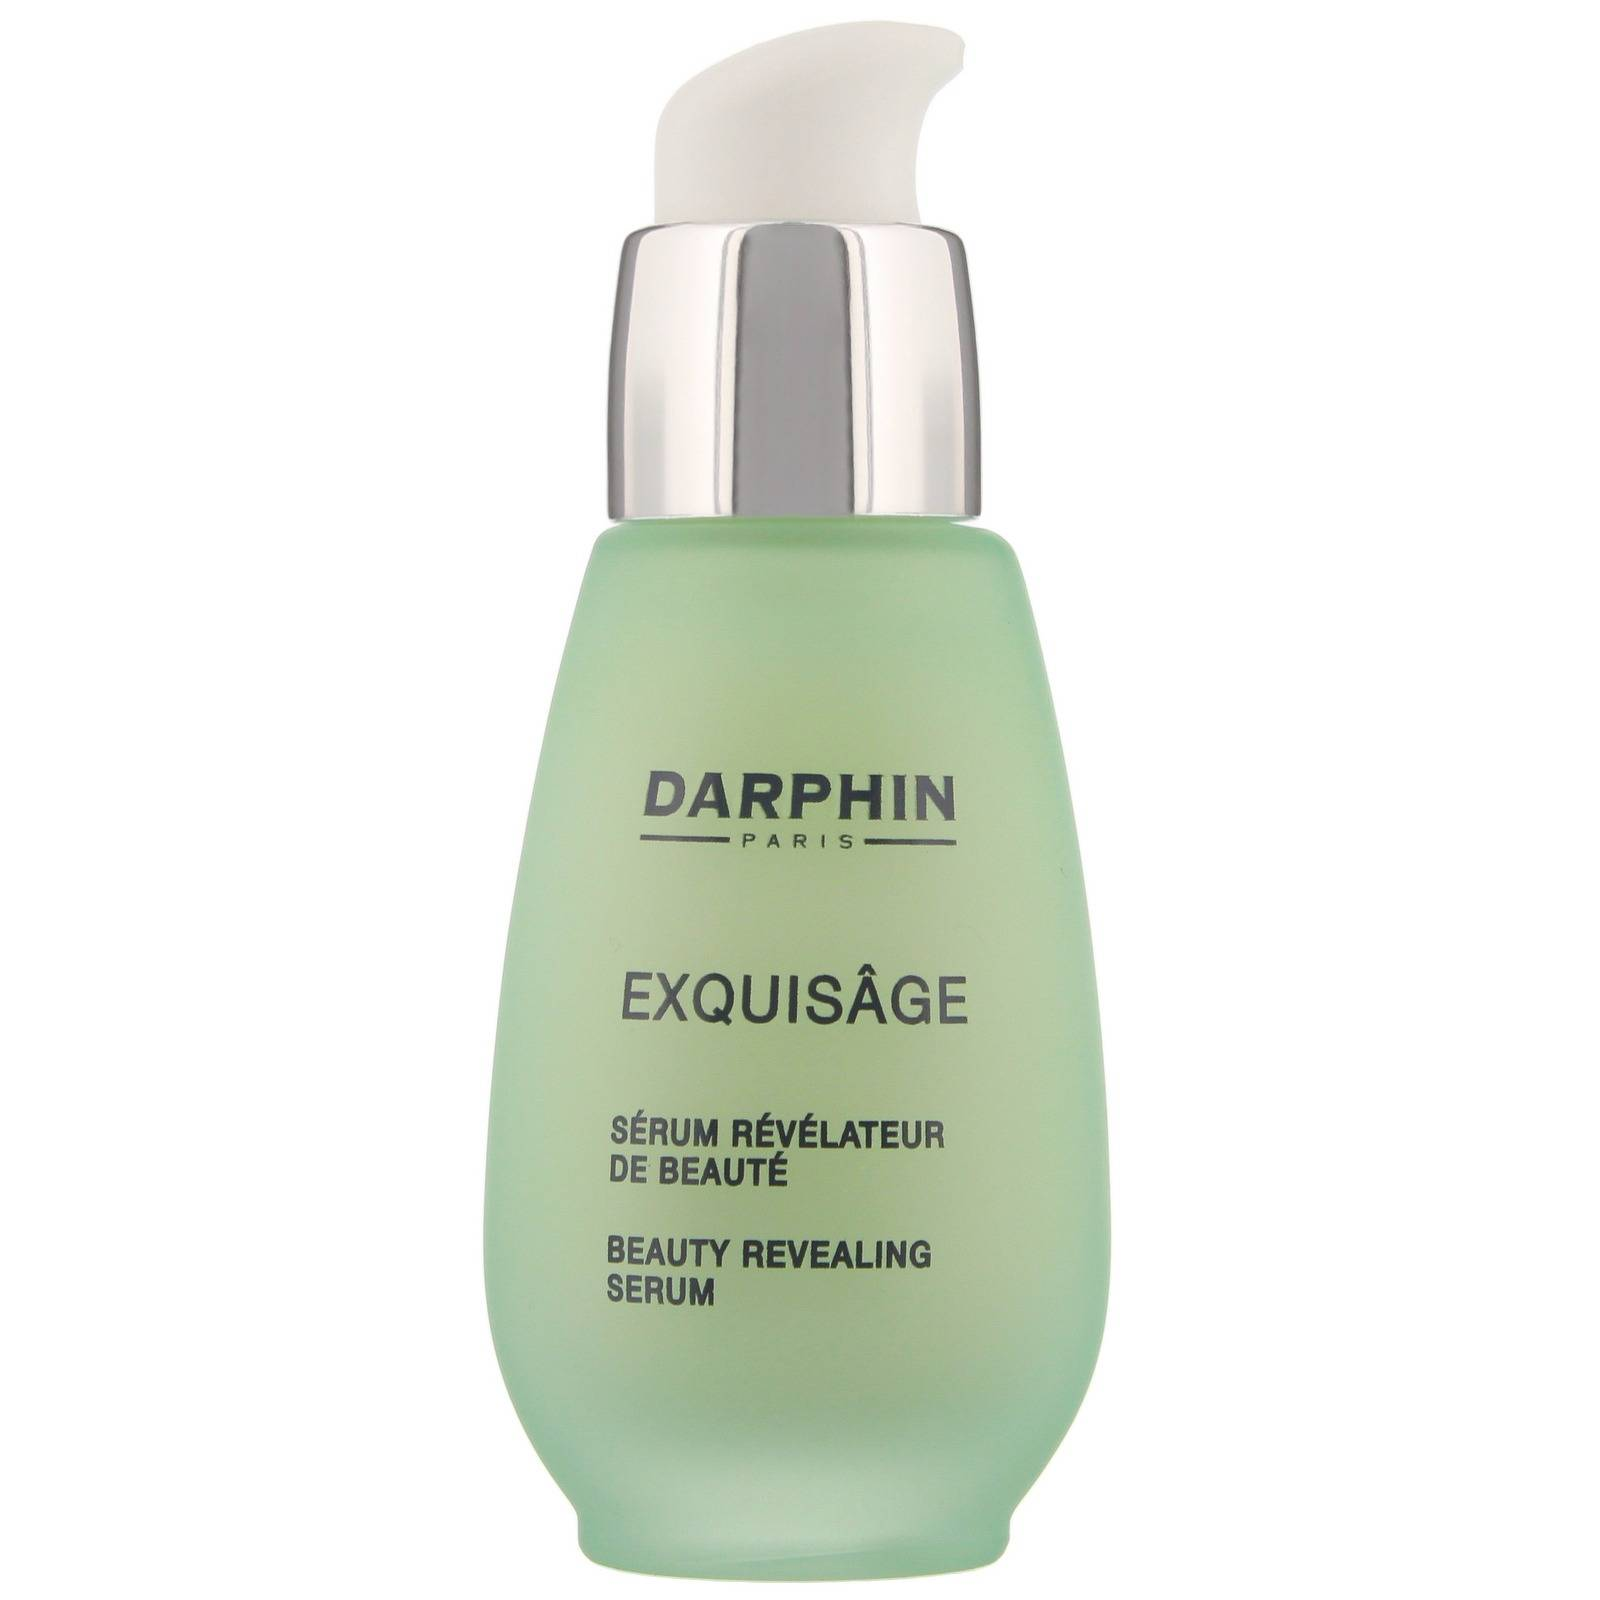 Darphin Serums Exquisage bellezza rivelando siero 30ml